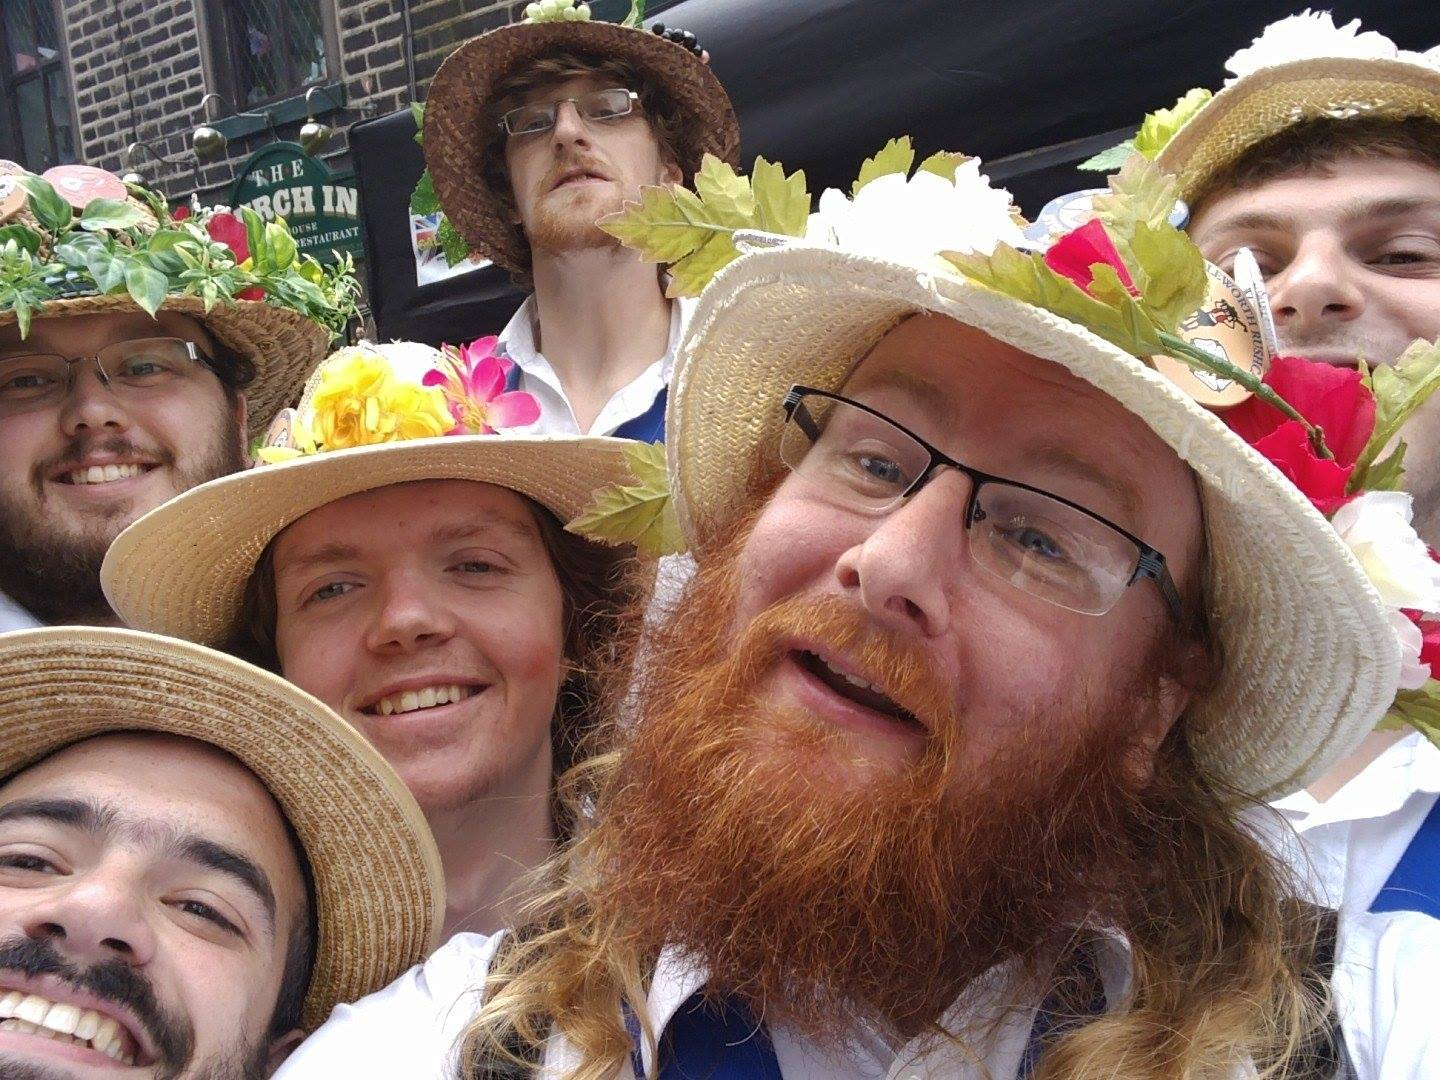 The Youth at Saddleworth Rushcart in 2016